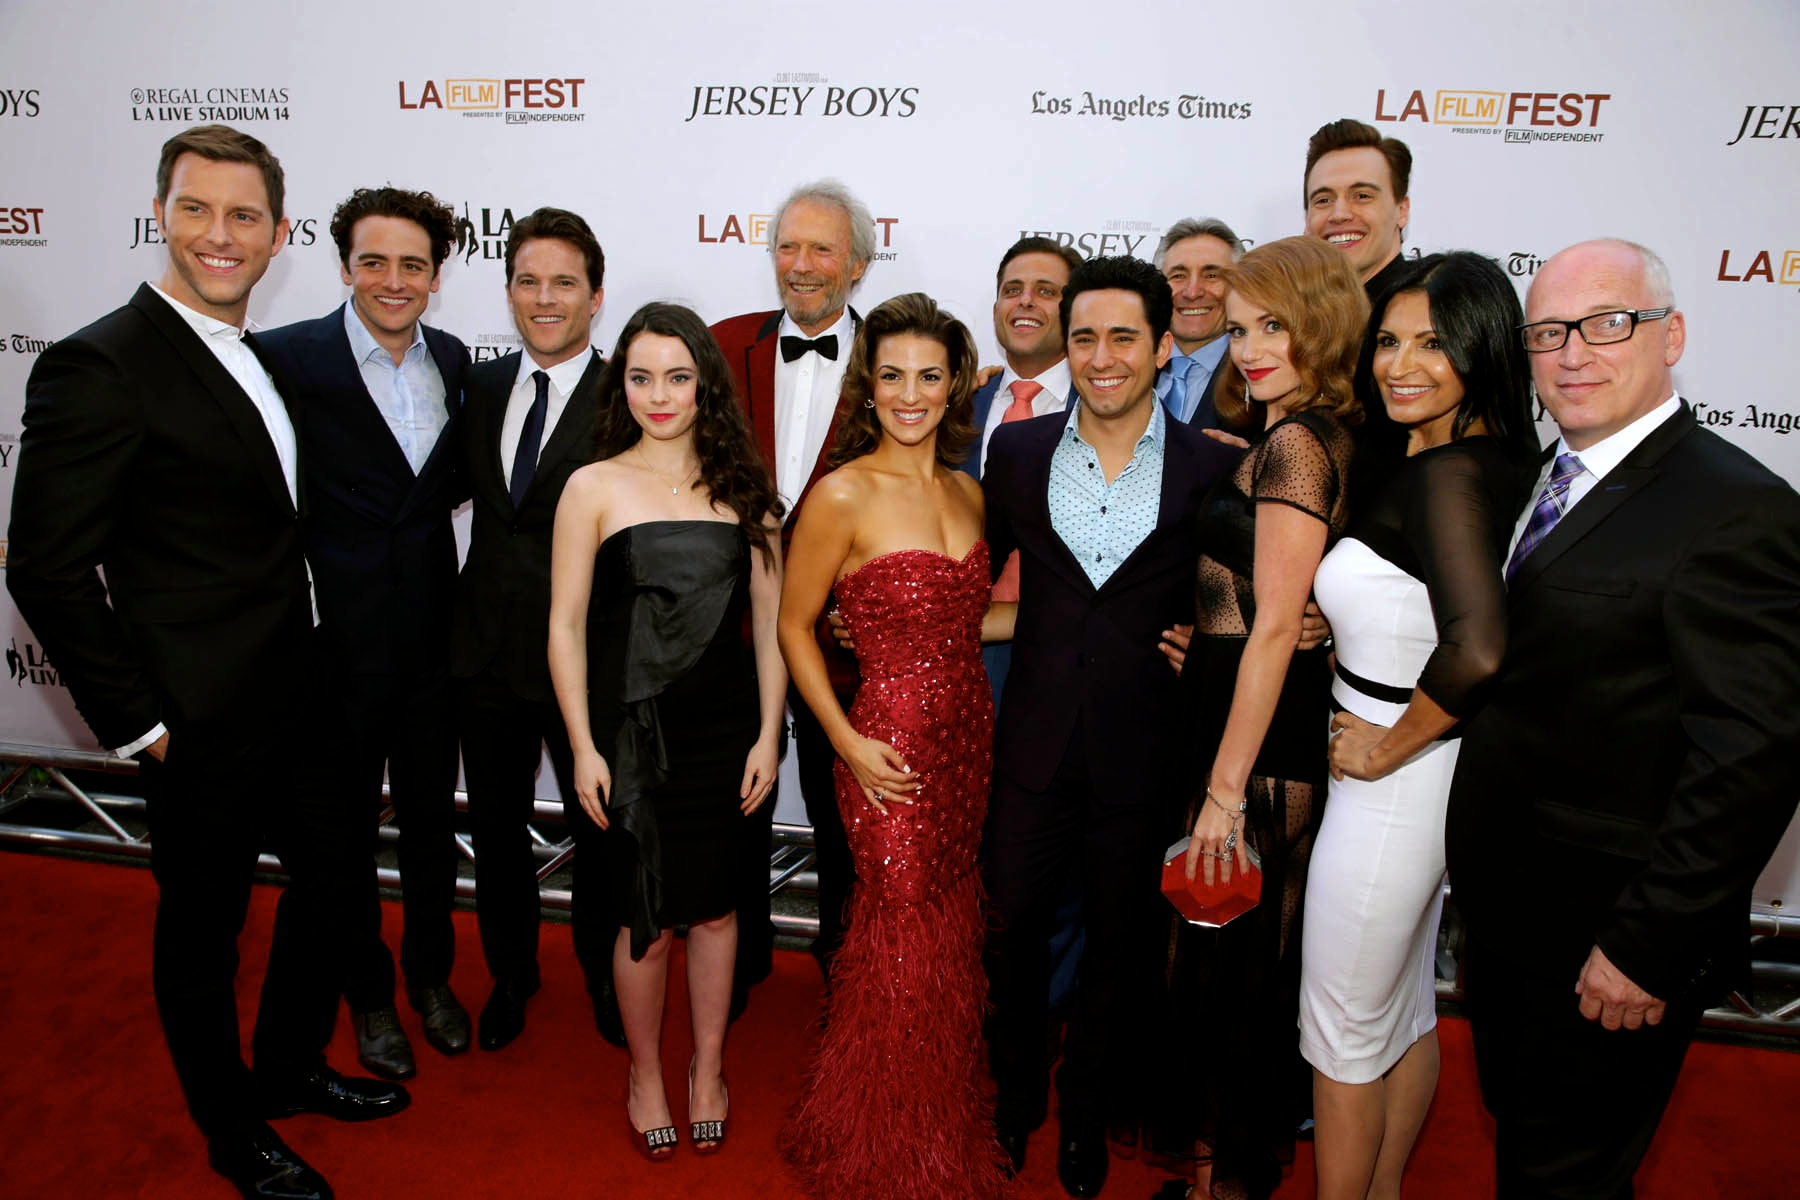 Mr. Eastwood and the Cast of the film, Jersey Boys, at the LA Film Festival premiere